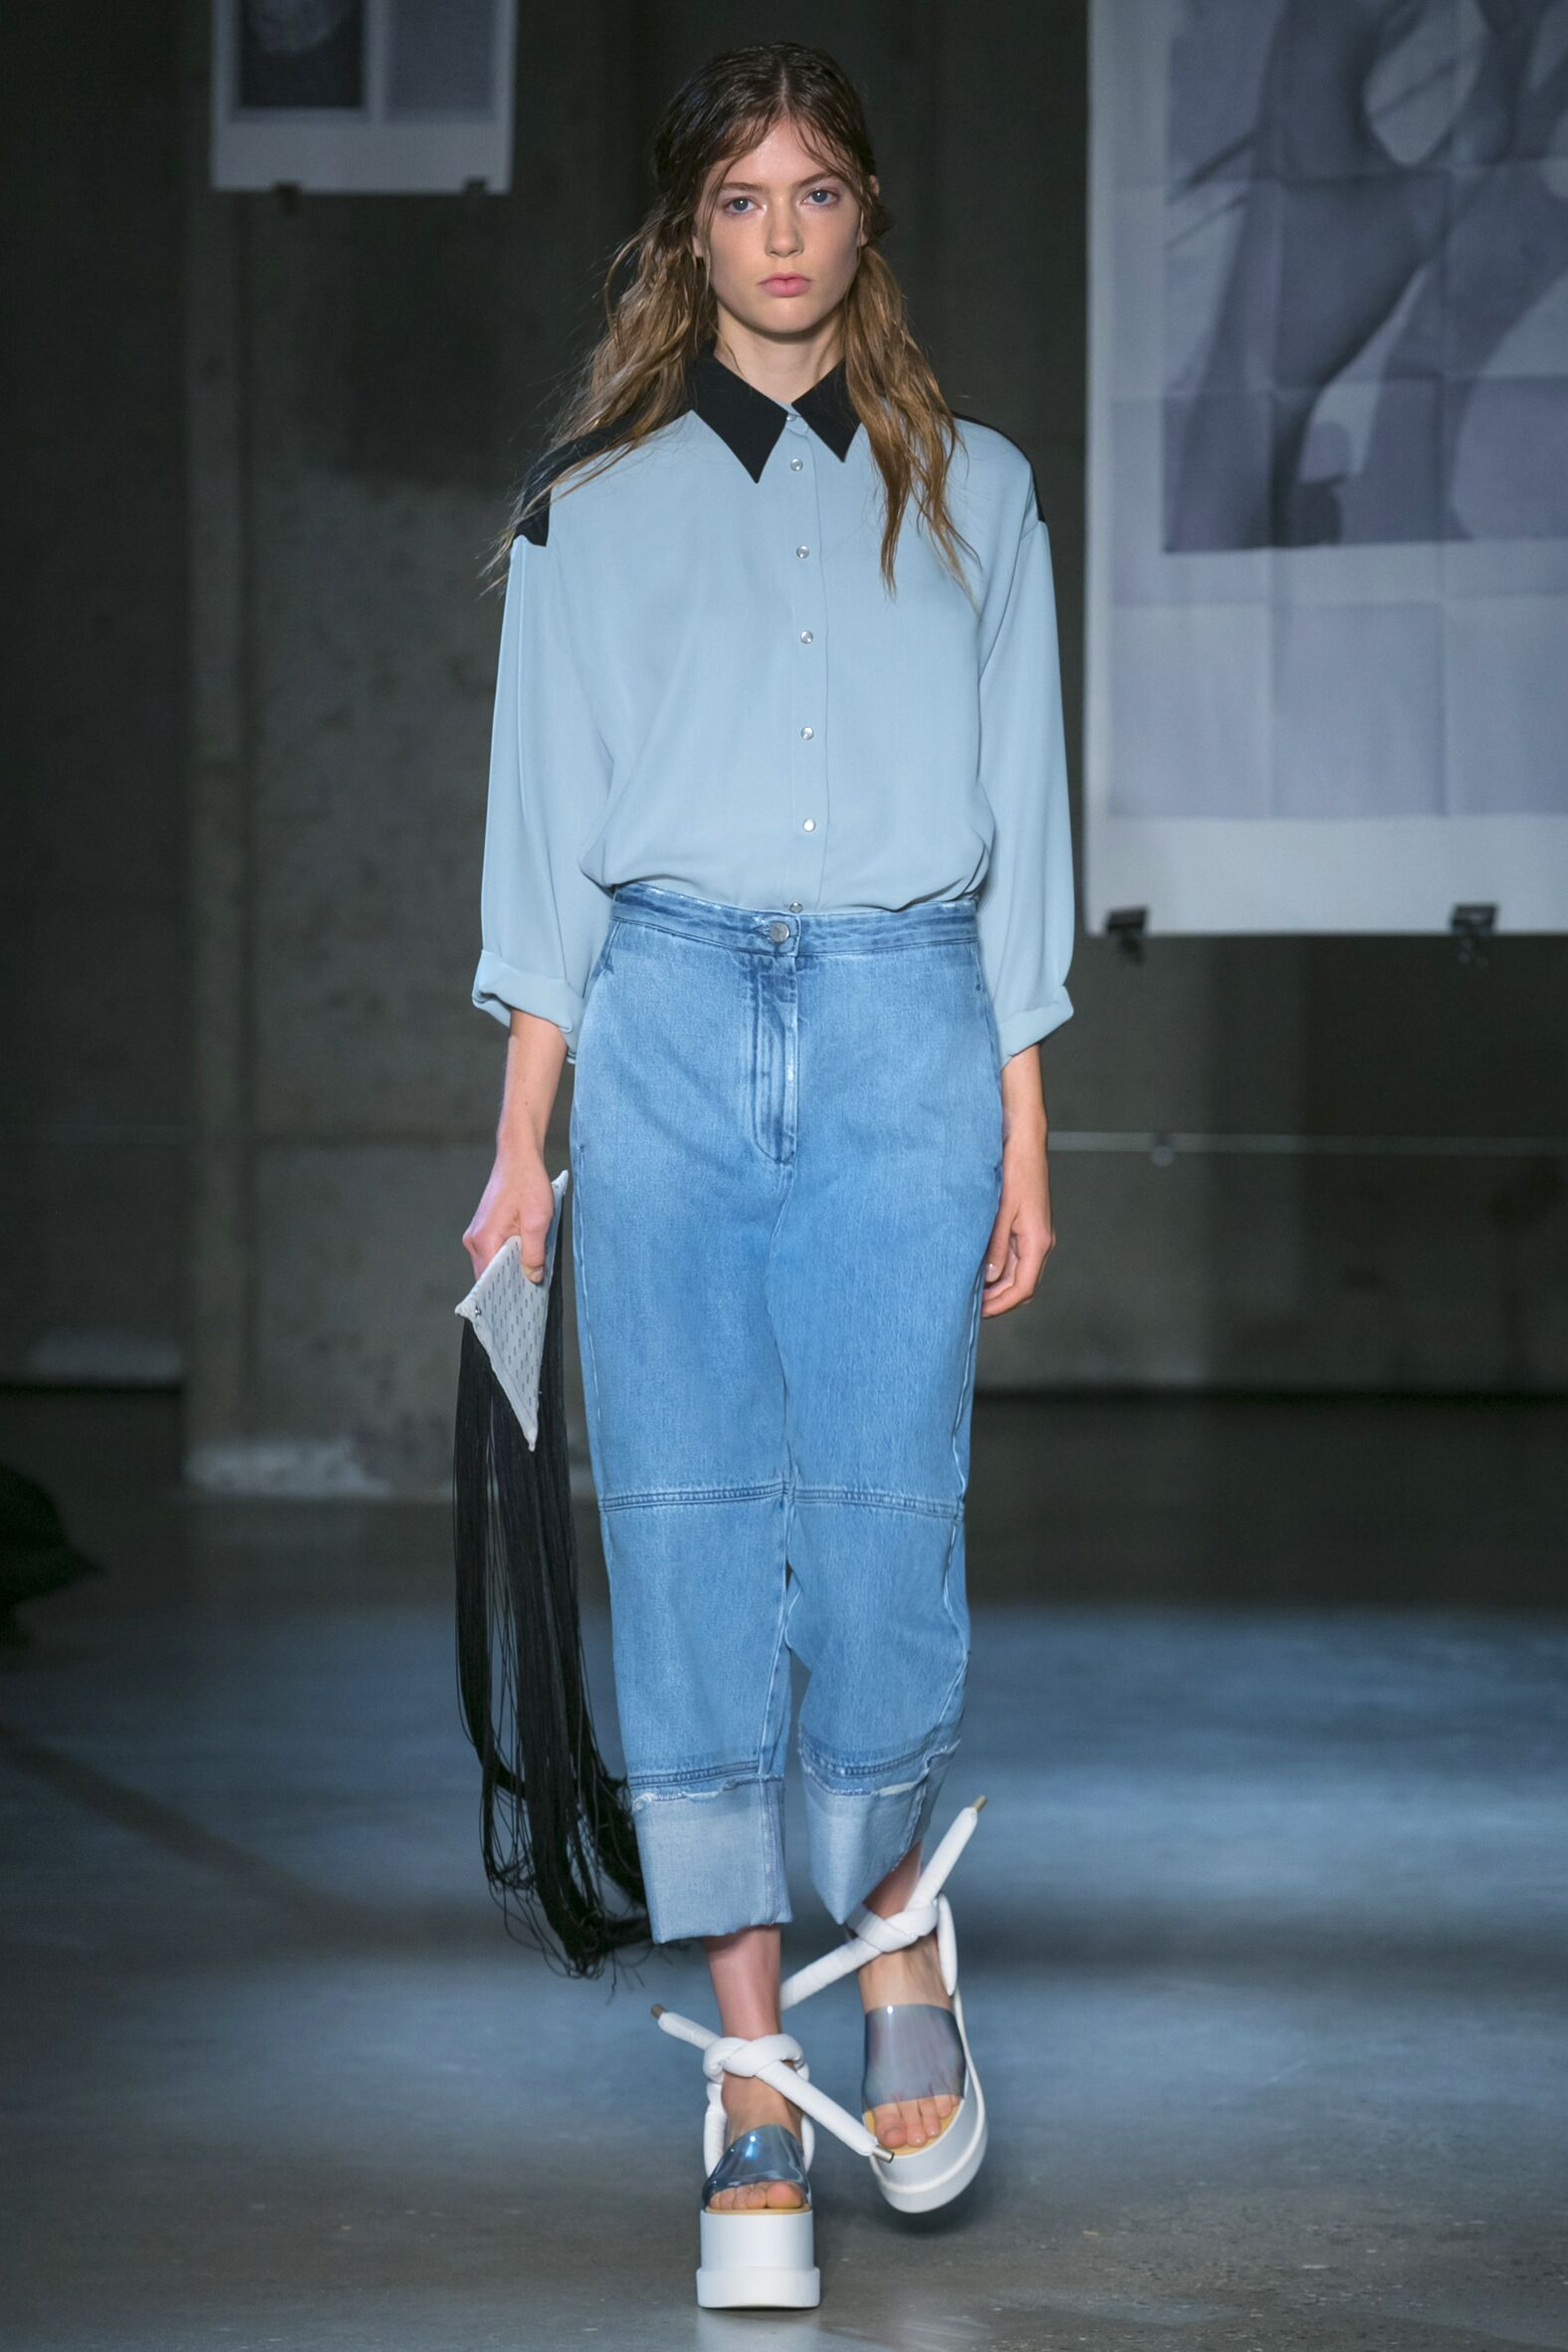 Spring 2015 Fashion Show MM6 Maison Martin Margiela